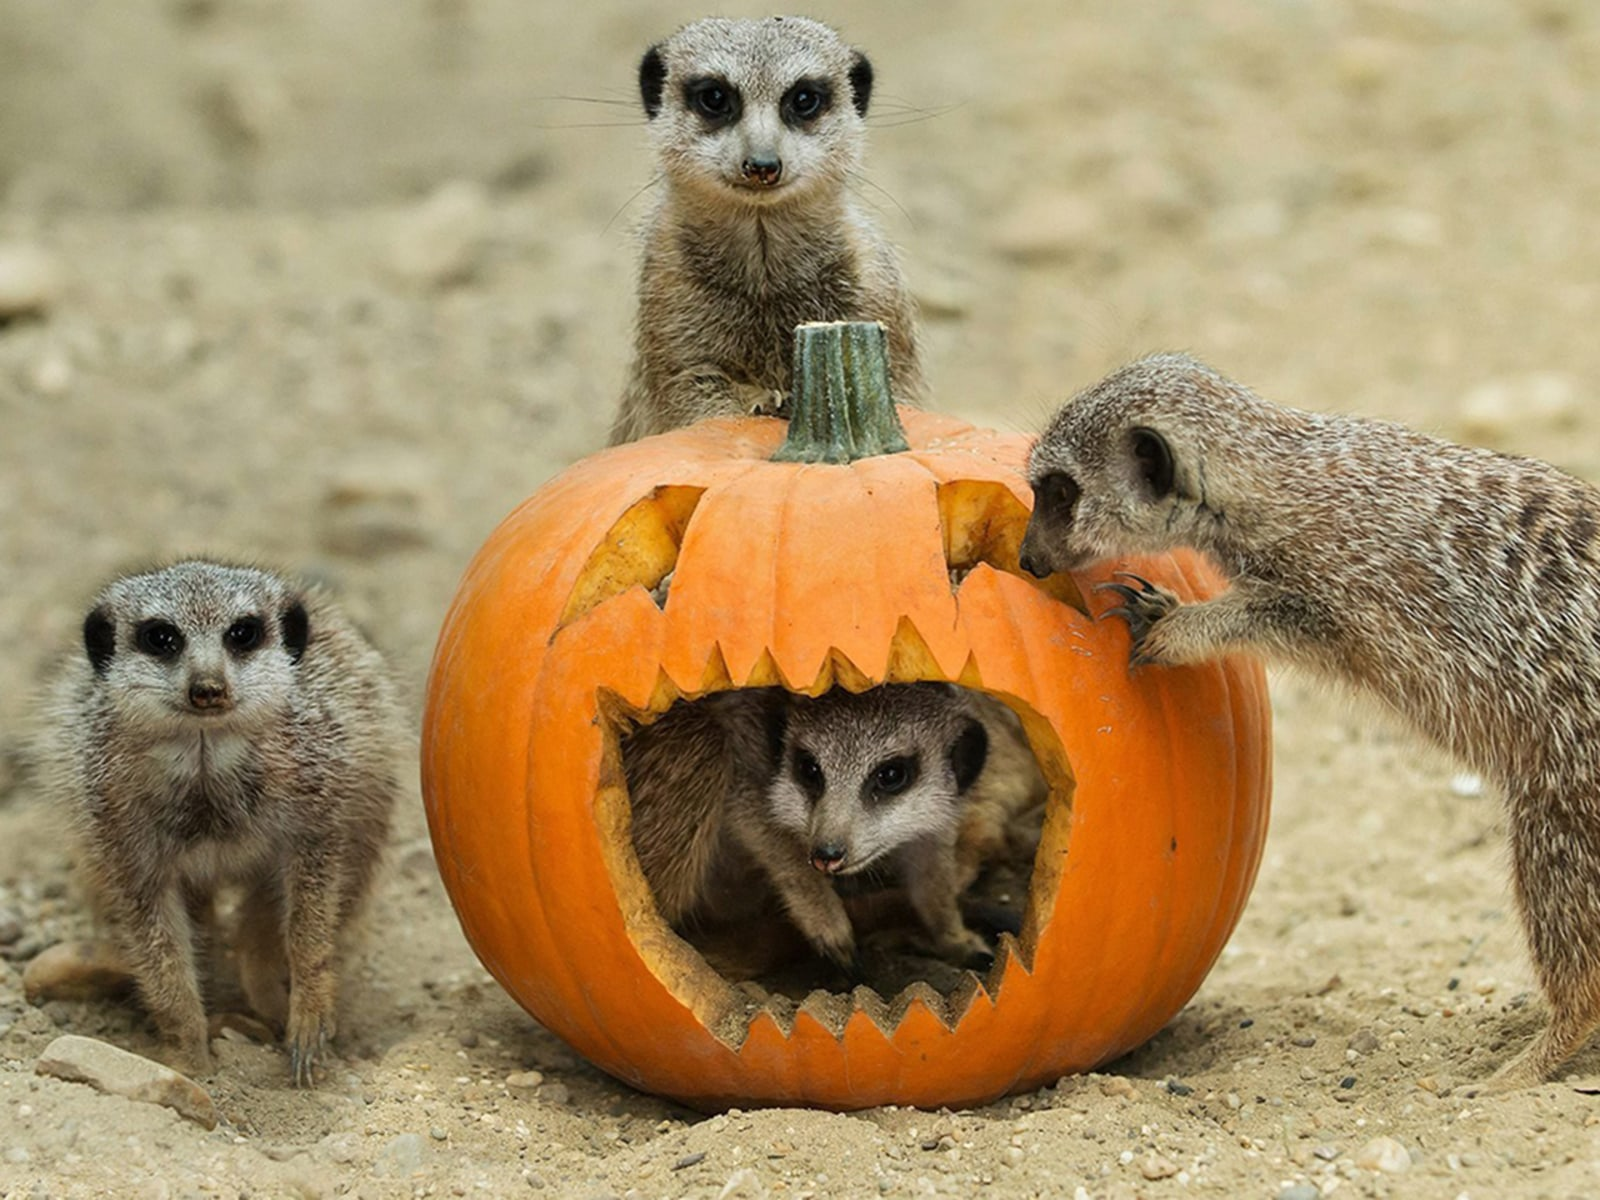 Image: Halloween in the animal garden